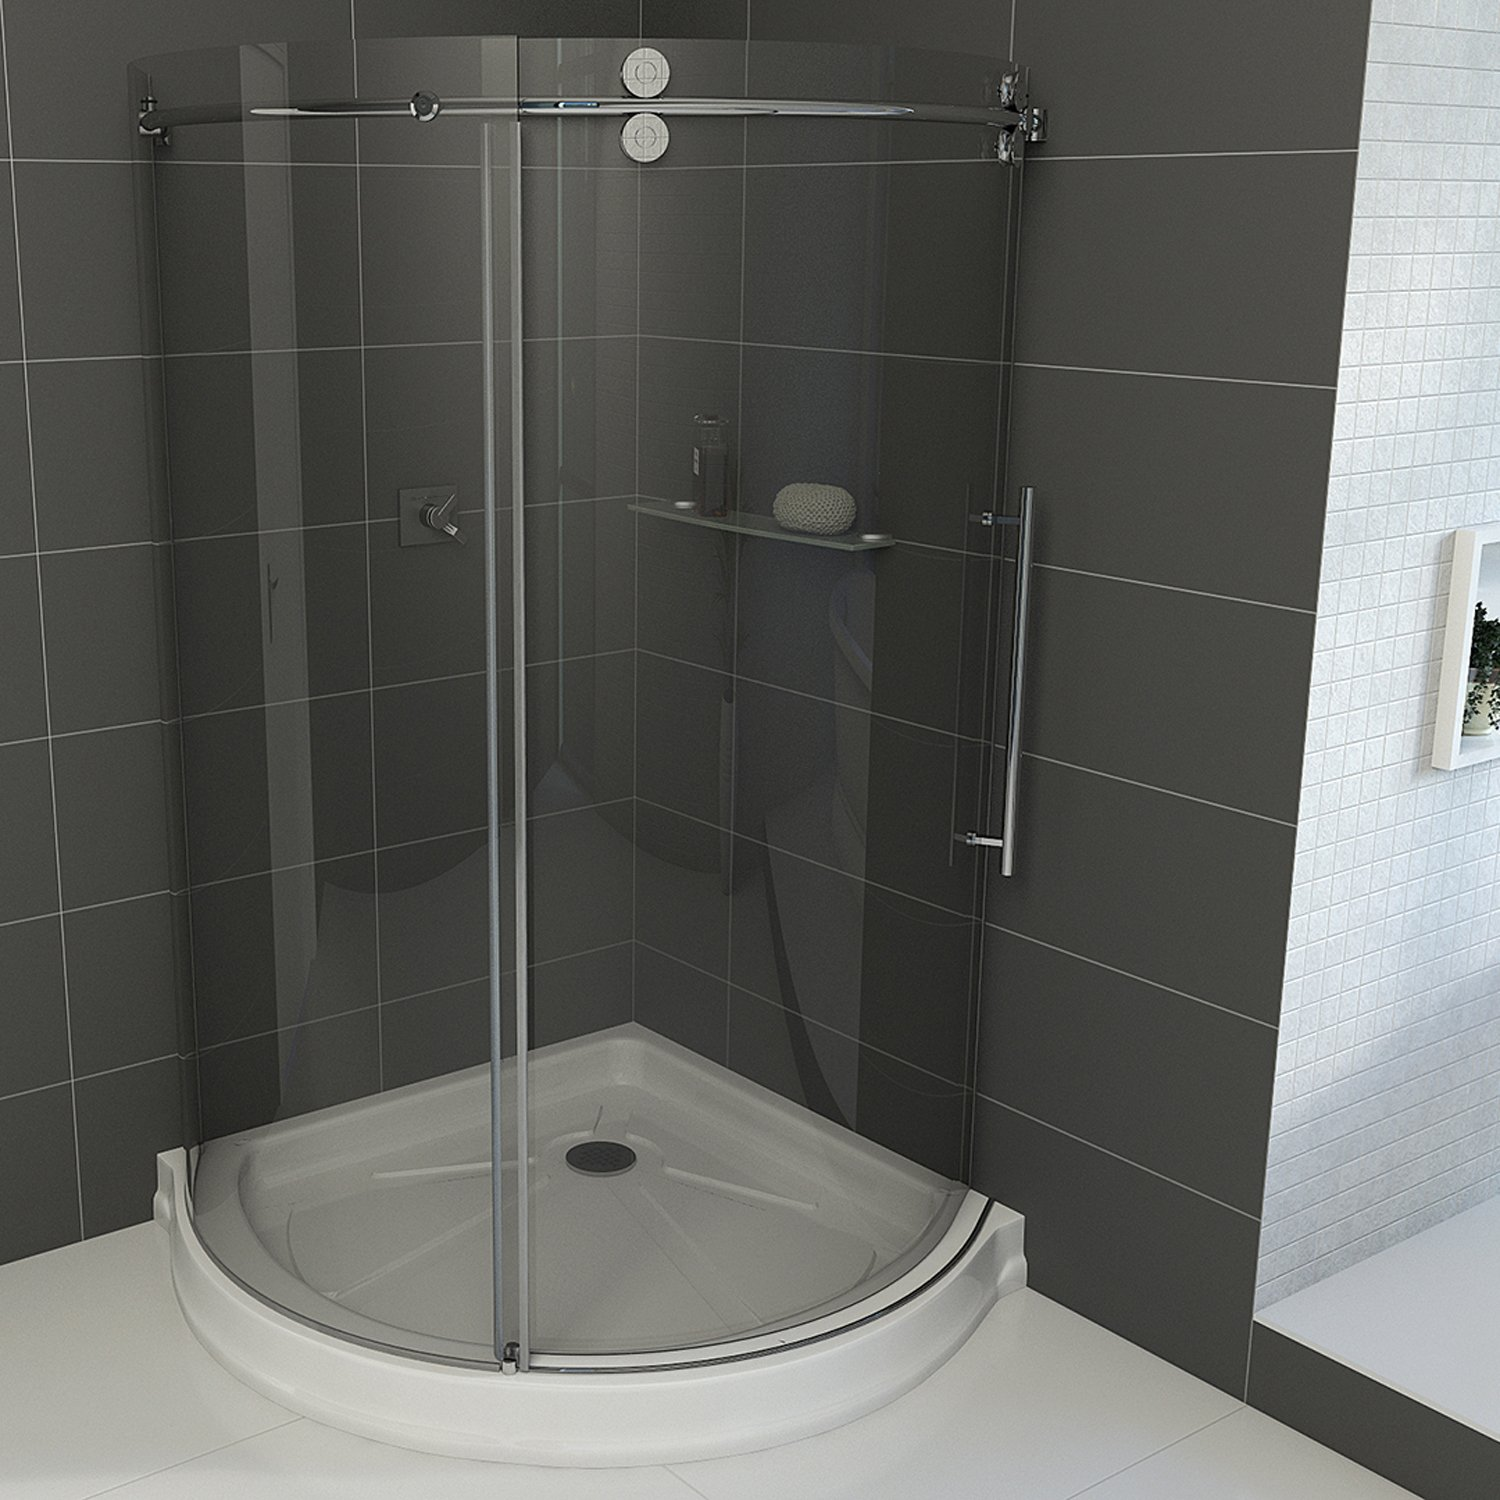 32 inch corner shower stall. VIGO Sanibel 36 x in  Frameless Round Sliding Shower Enclosure with 3125 Clear Glass and Chrome Hardware Right Sided Door Base Included